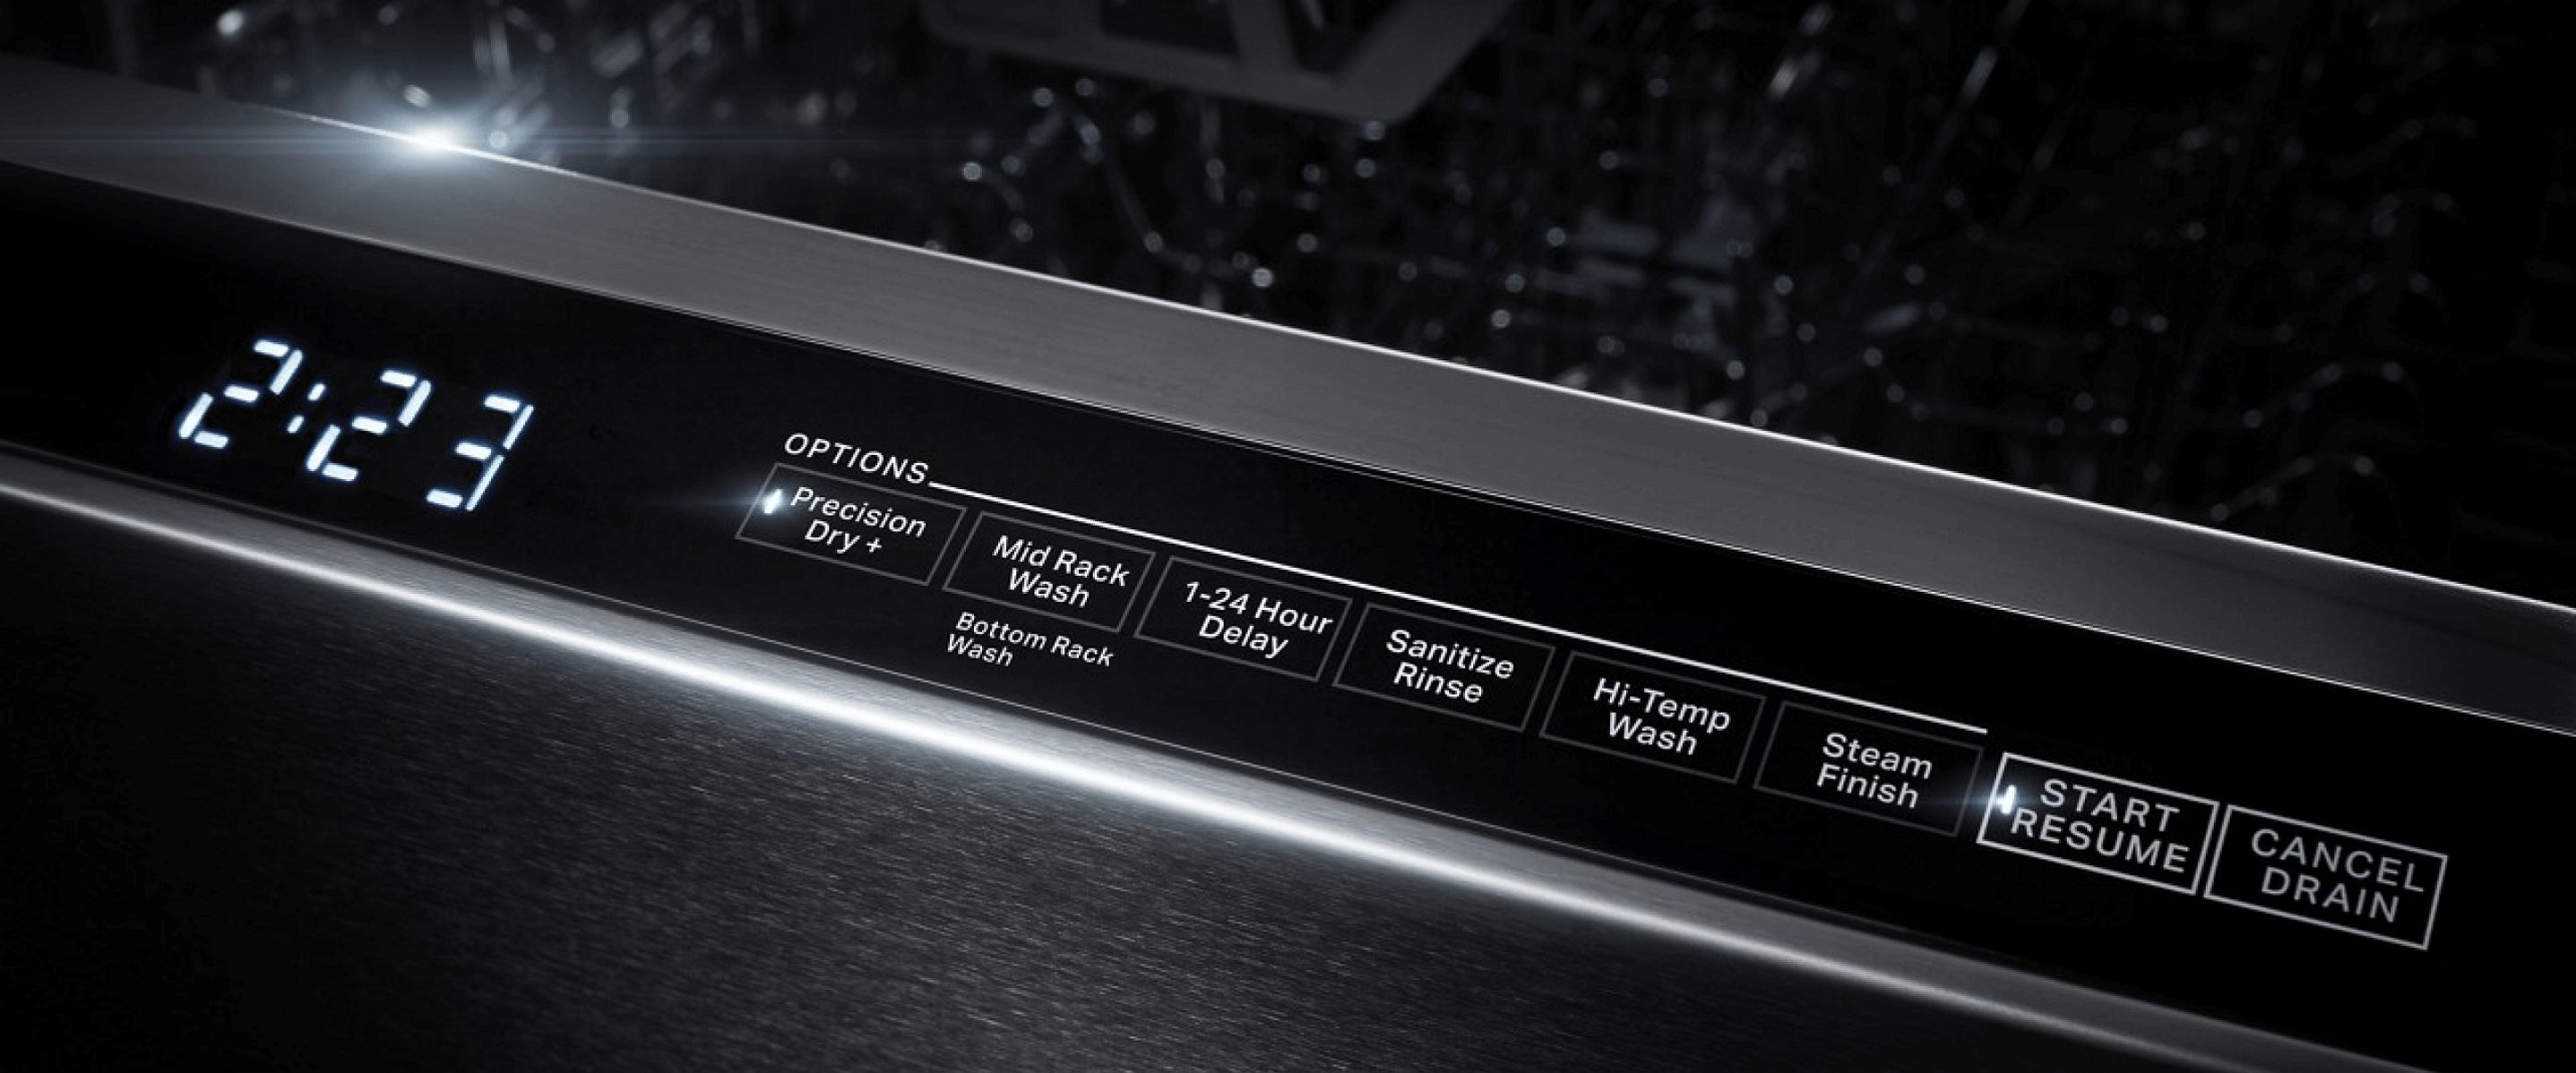 The console of a JennAir® dishwasher.